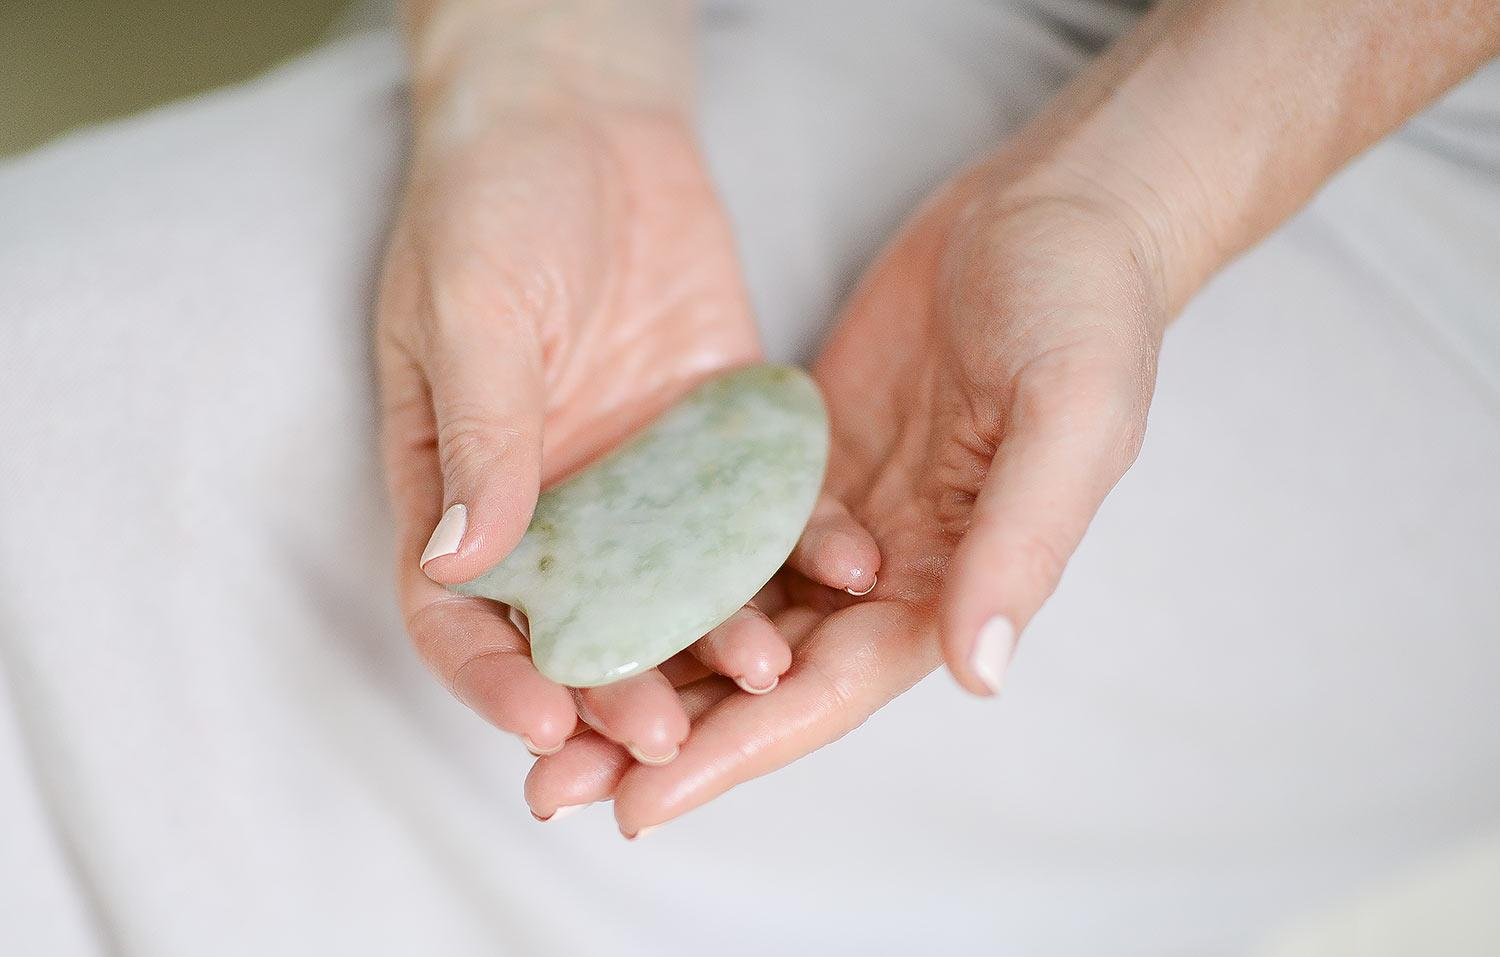 hayou-method-gua-sha-tool-jade